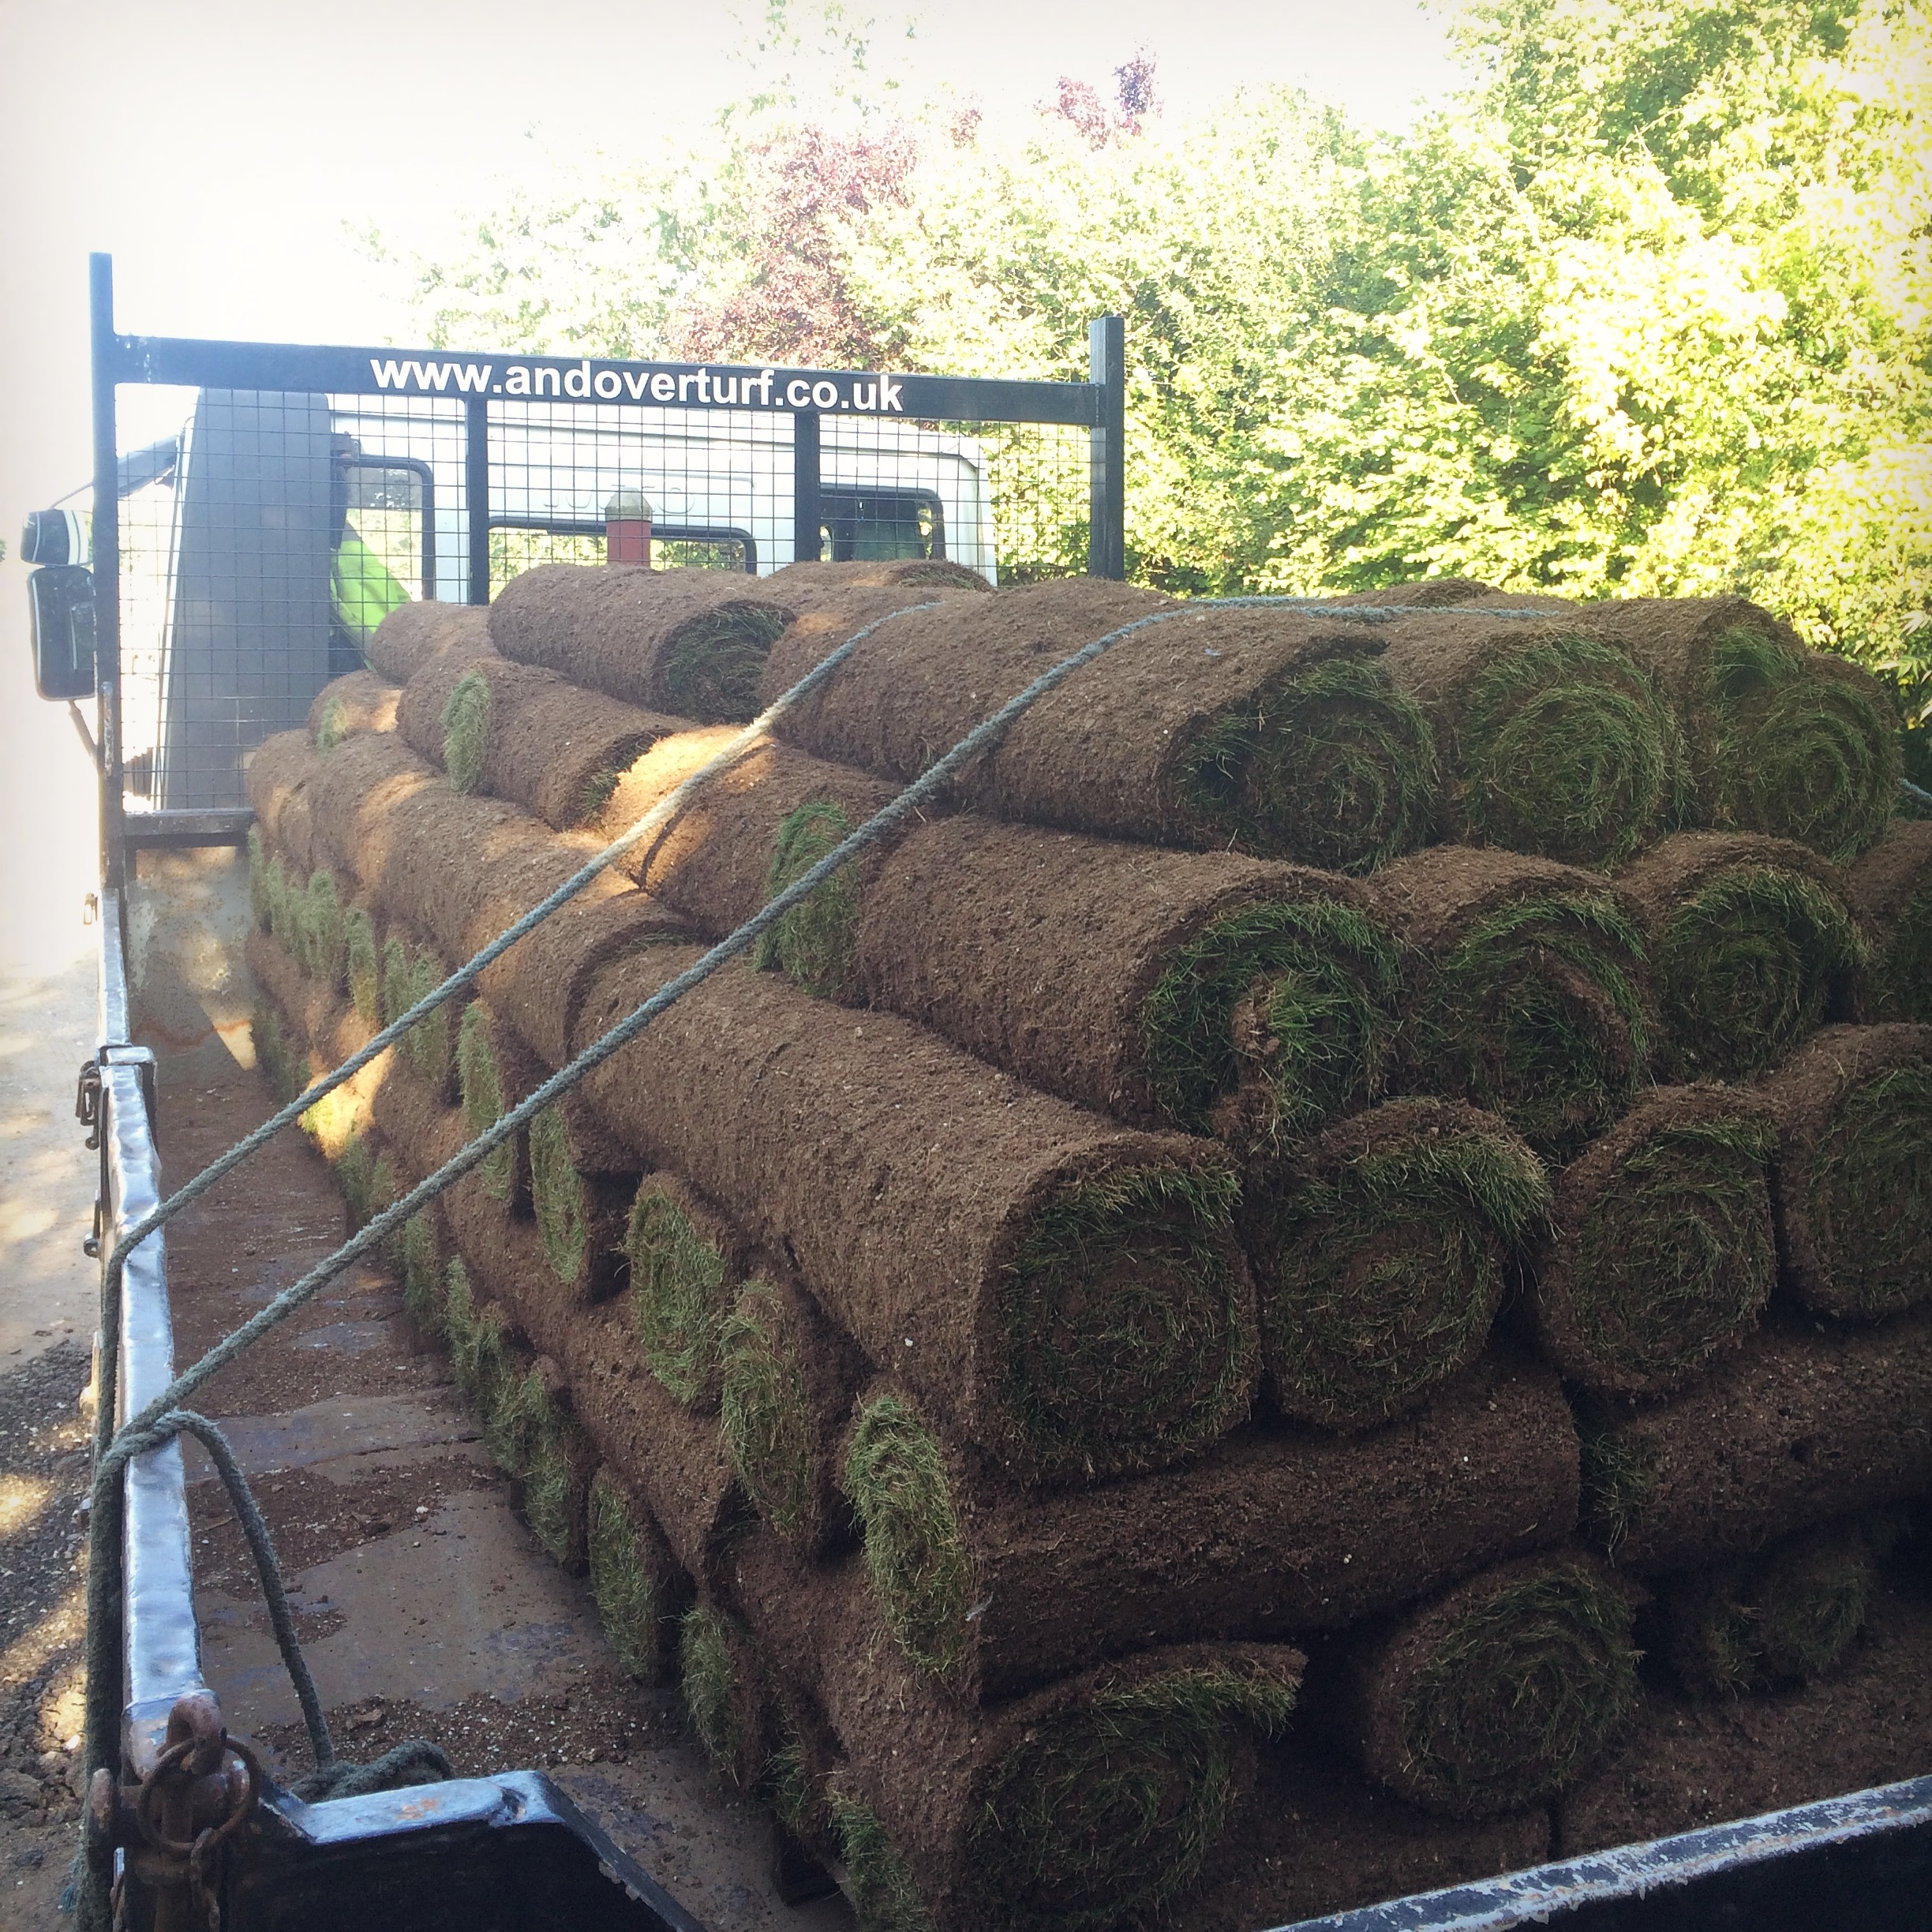 Andover Turf ready for dispatch